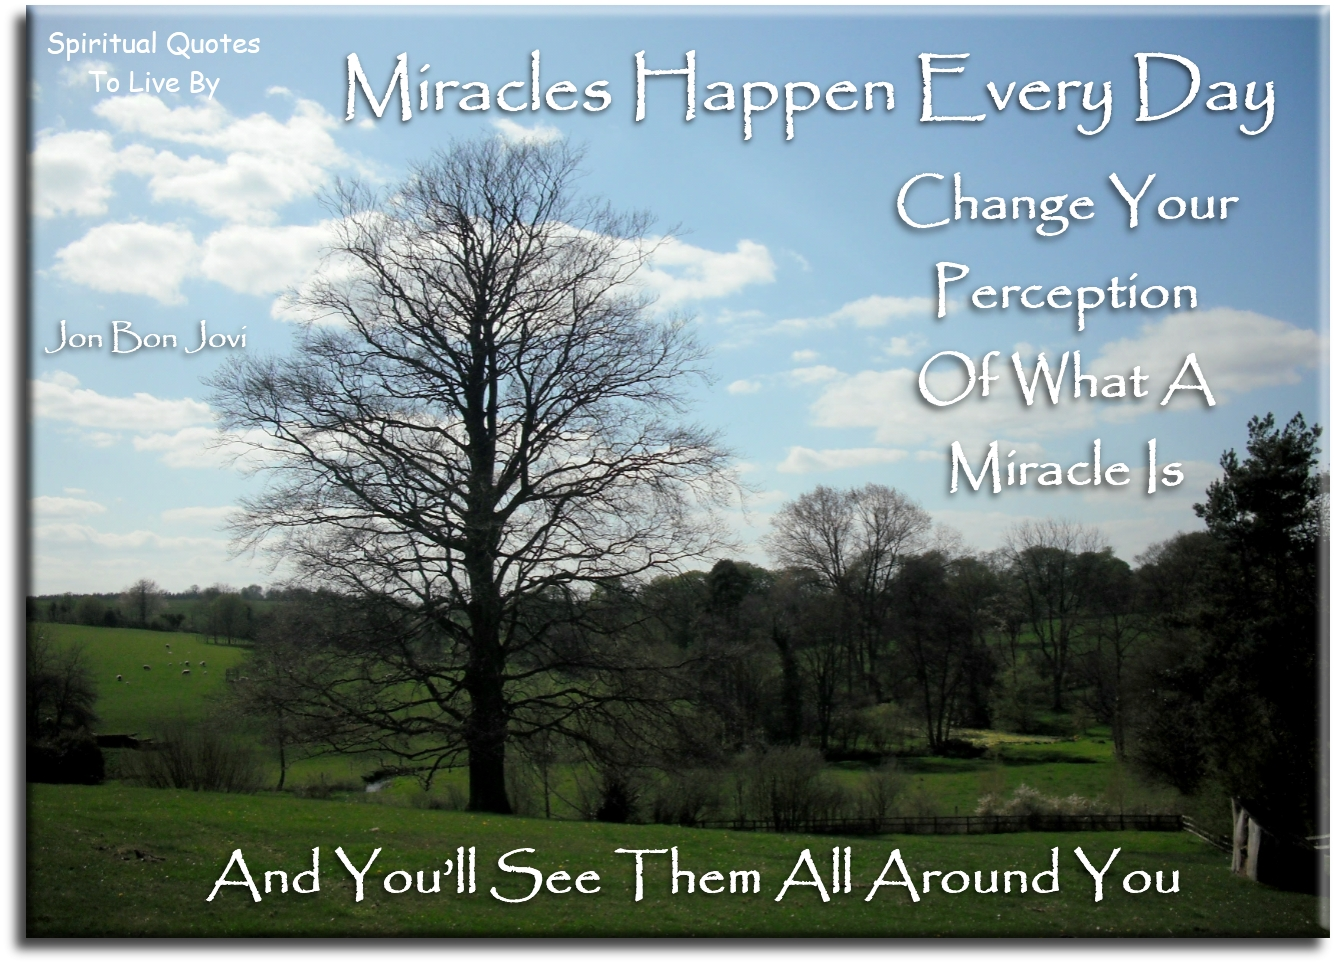 Miracles happen everyday, change your perception of what a miracle is and you'll see them all around you - Jon Bon Jovi - Spiritual Quotes To Live By